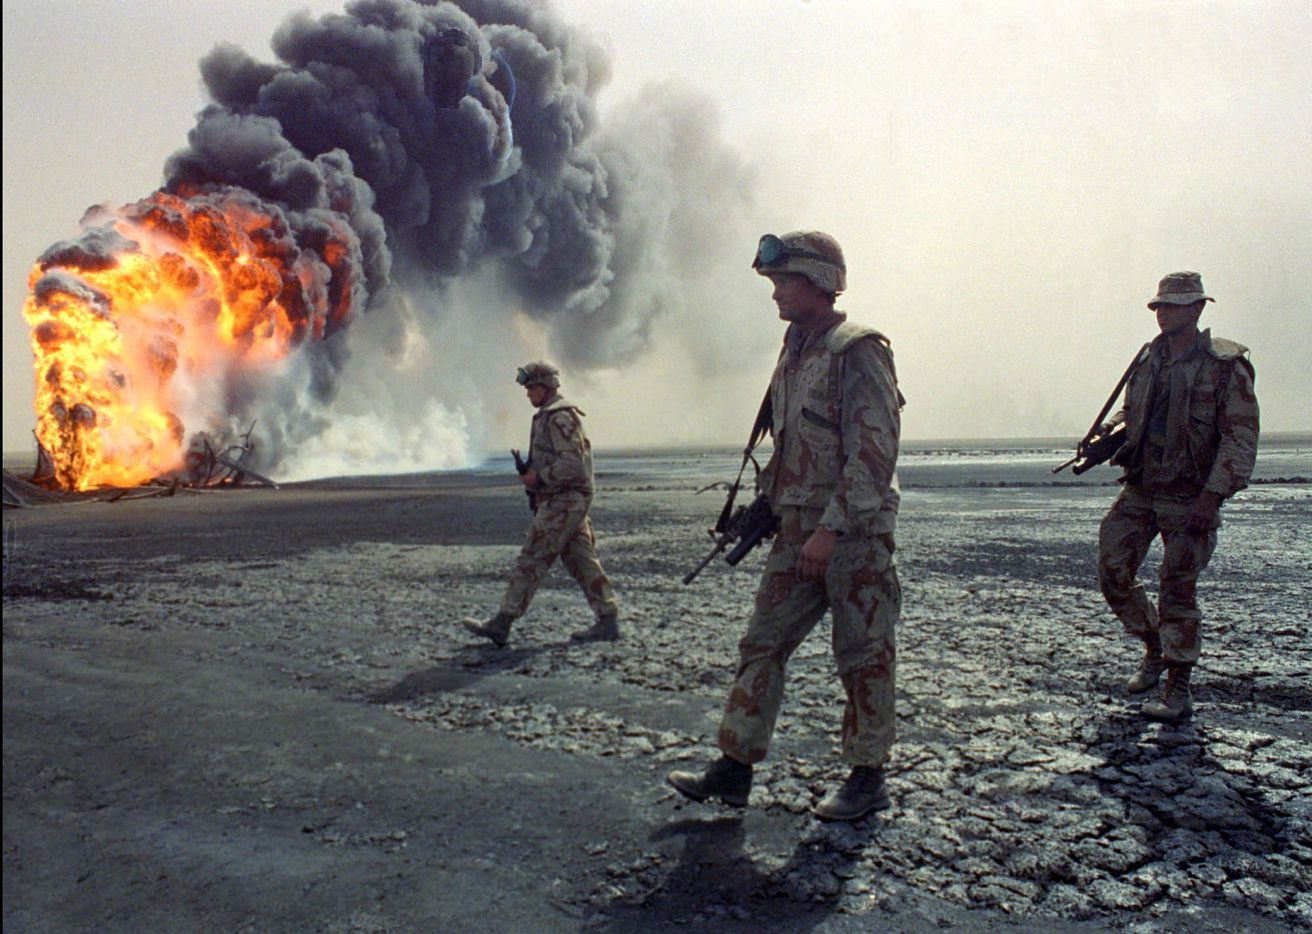 A U.S. Marine patrol walks across the charred oil landscape near a burning well  during perimeter security patrol near Kuwait City on March 7,  1991, during the Gulf War that ended the Iraqi  occupation of Kuwait.